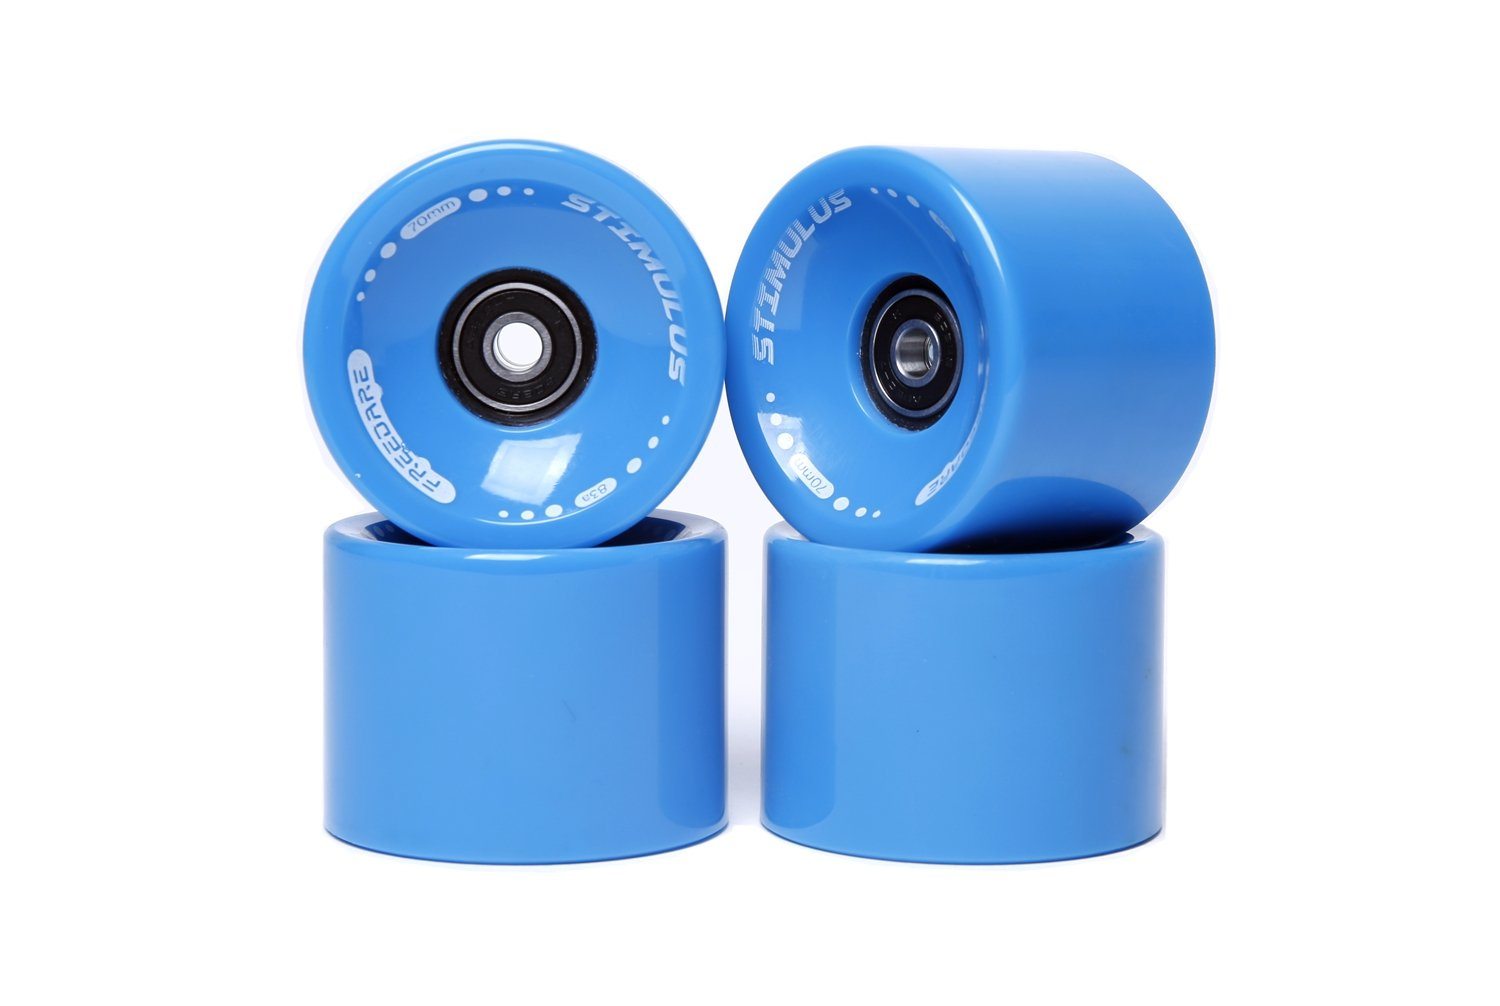 FREEDARE 70mm Longboard Wheels with ABEC-7 Bearings and Spacers(Blue,Set of 4) by FREEDARE